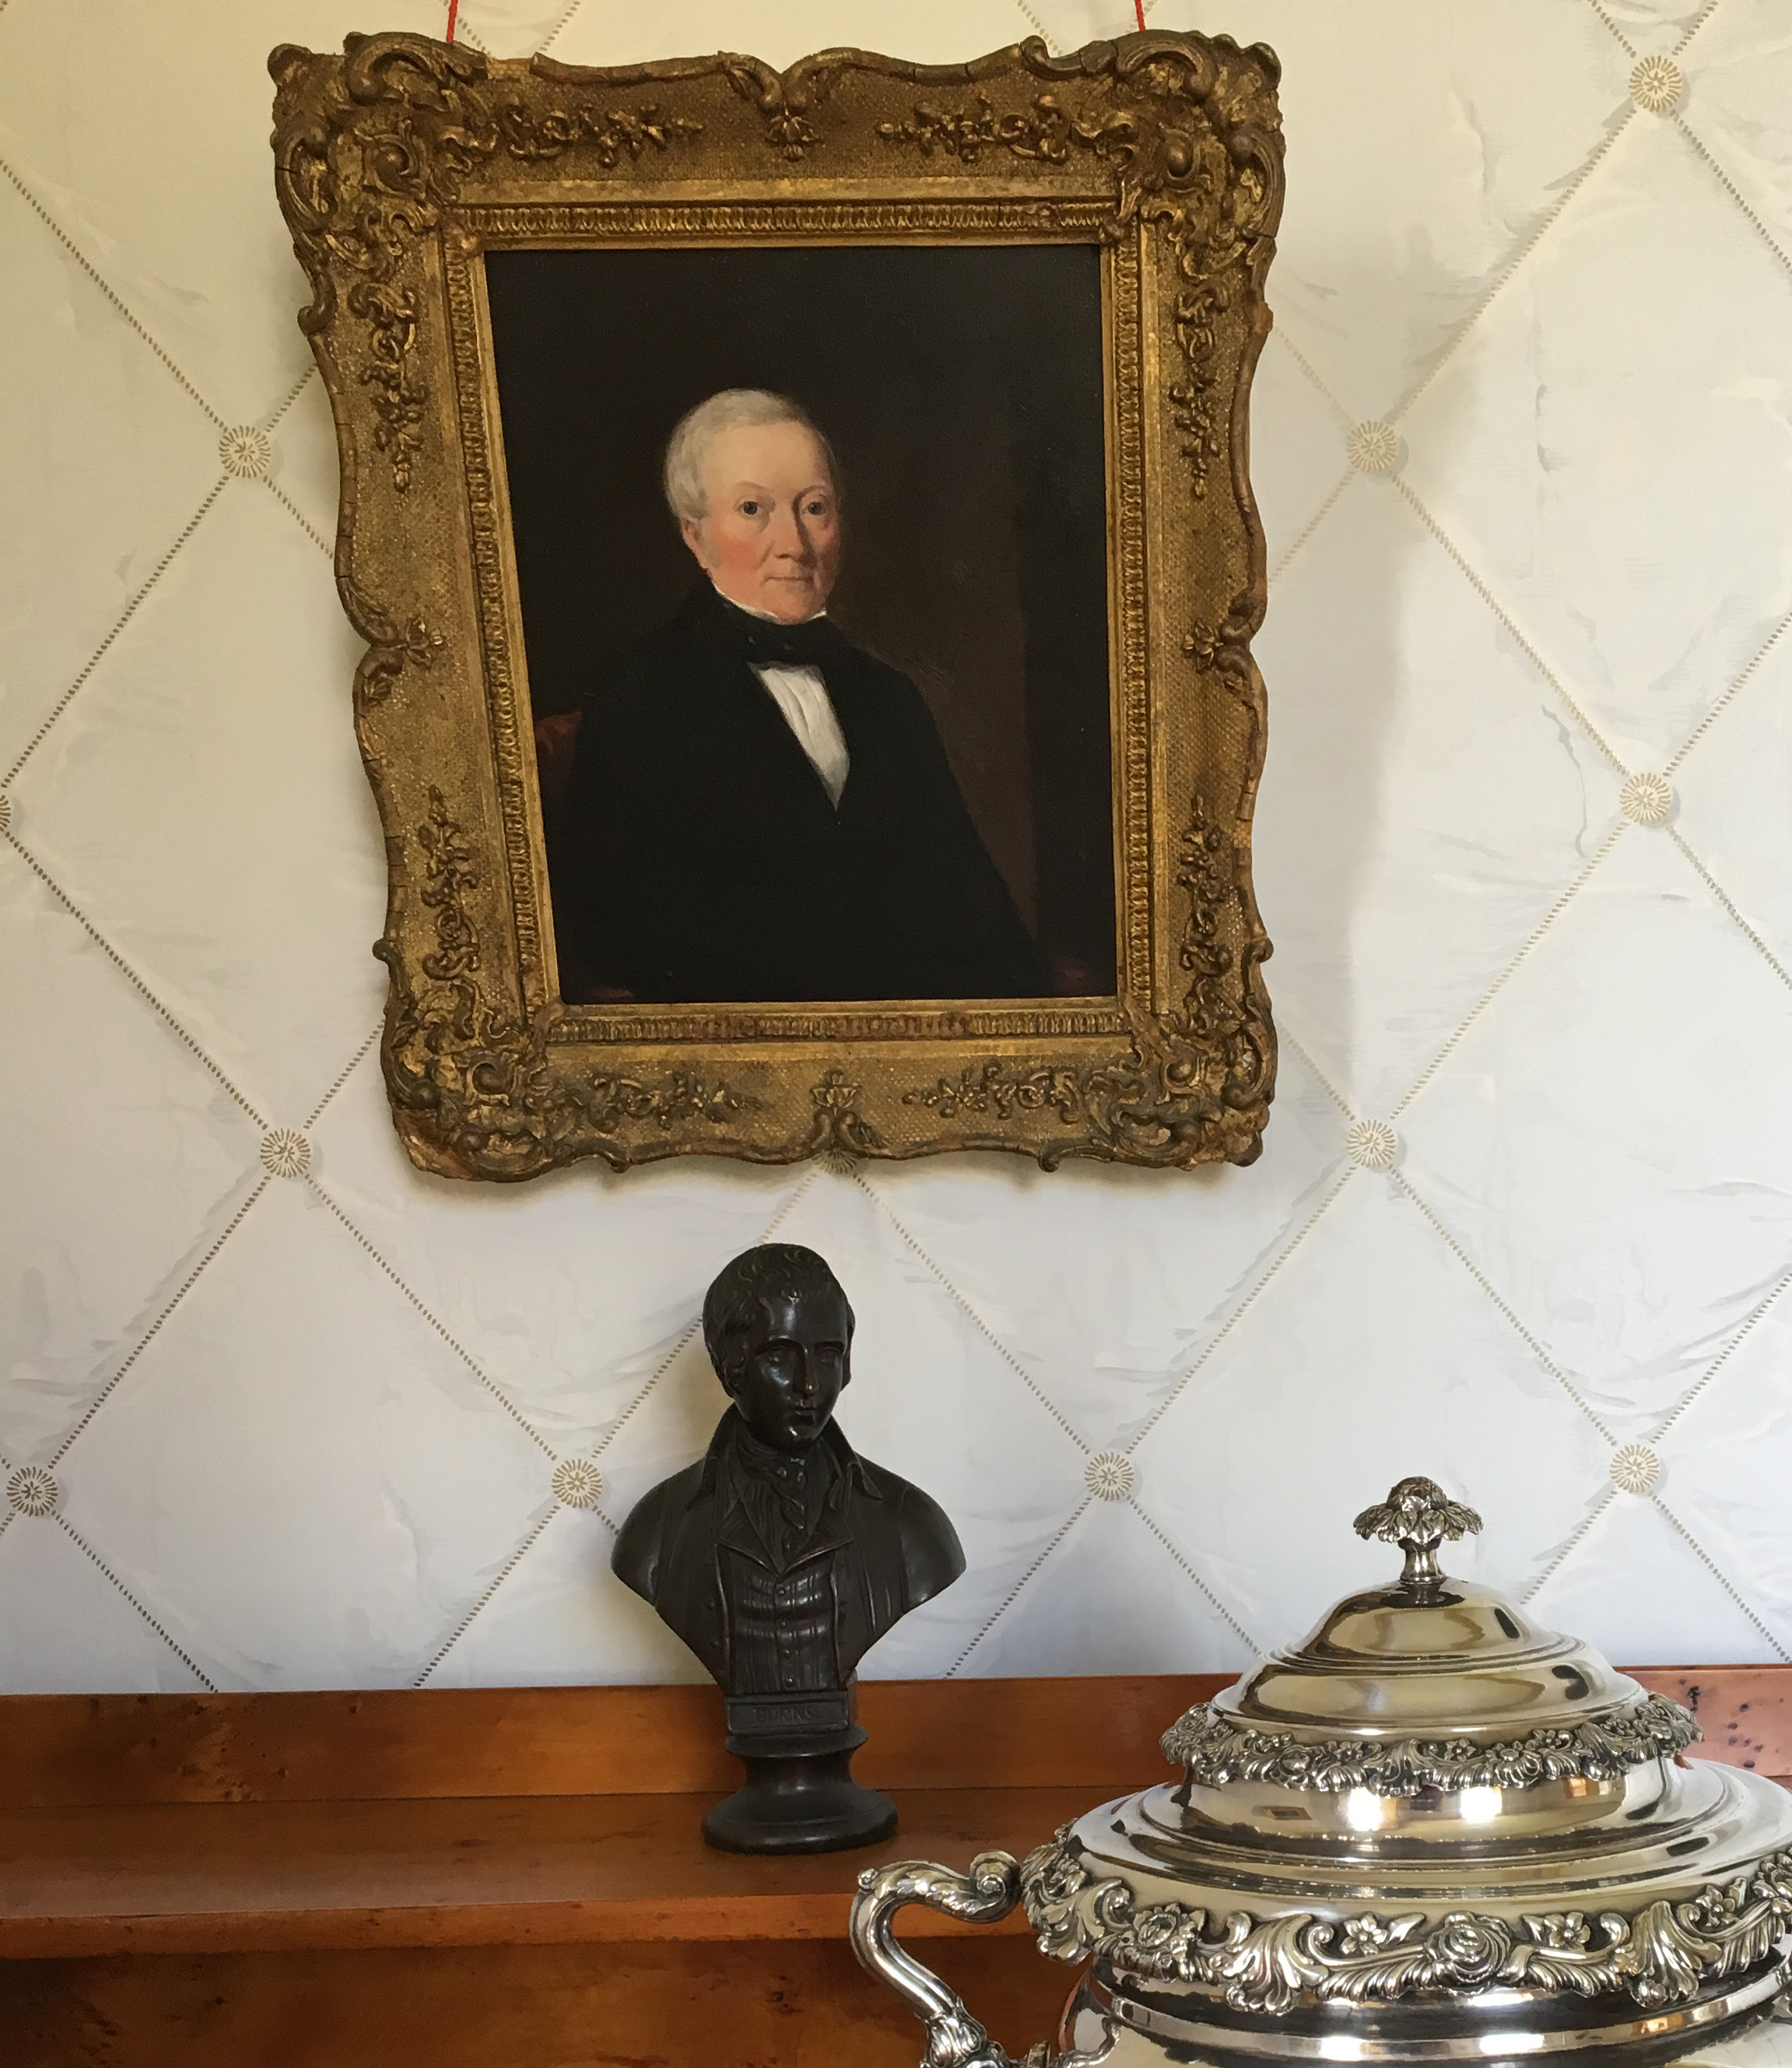 Artwork - Narryna's art collection features portraits by British and Tasmanian 19th century artists.